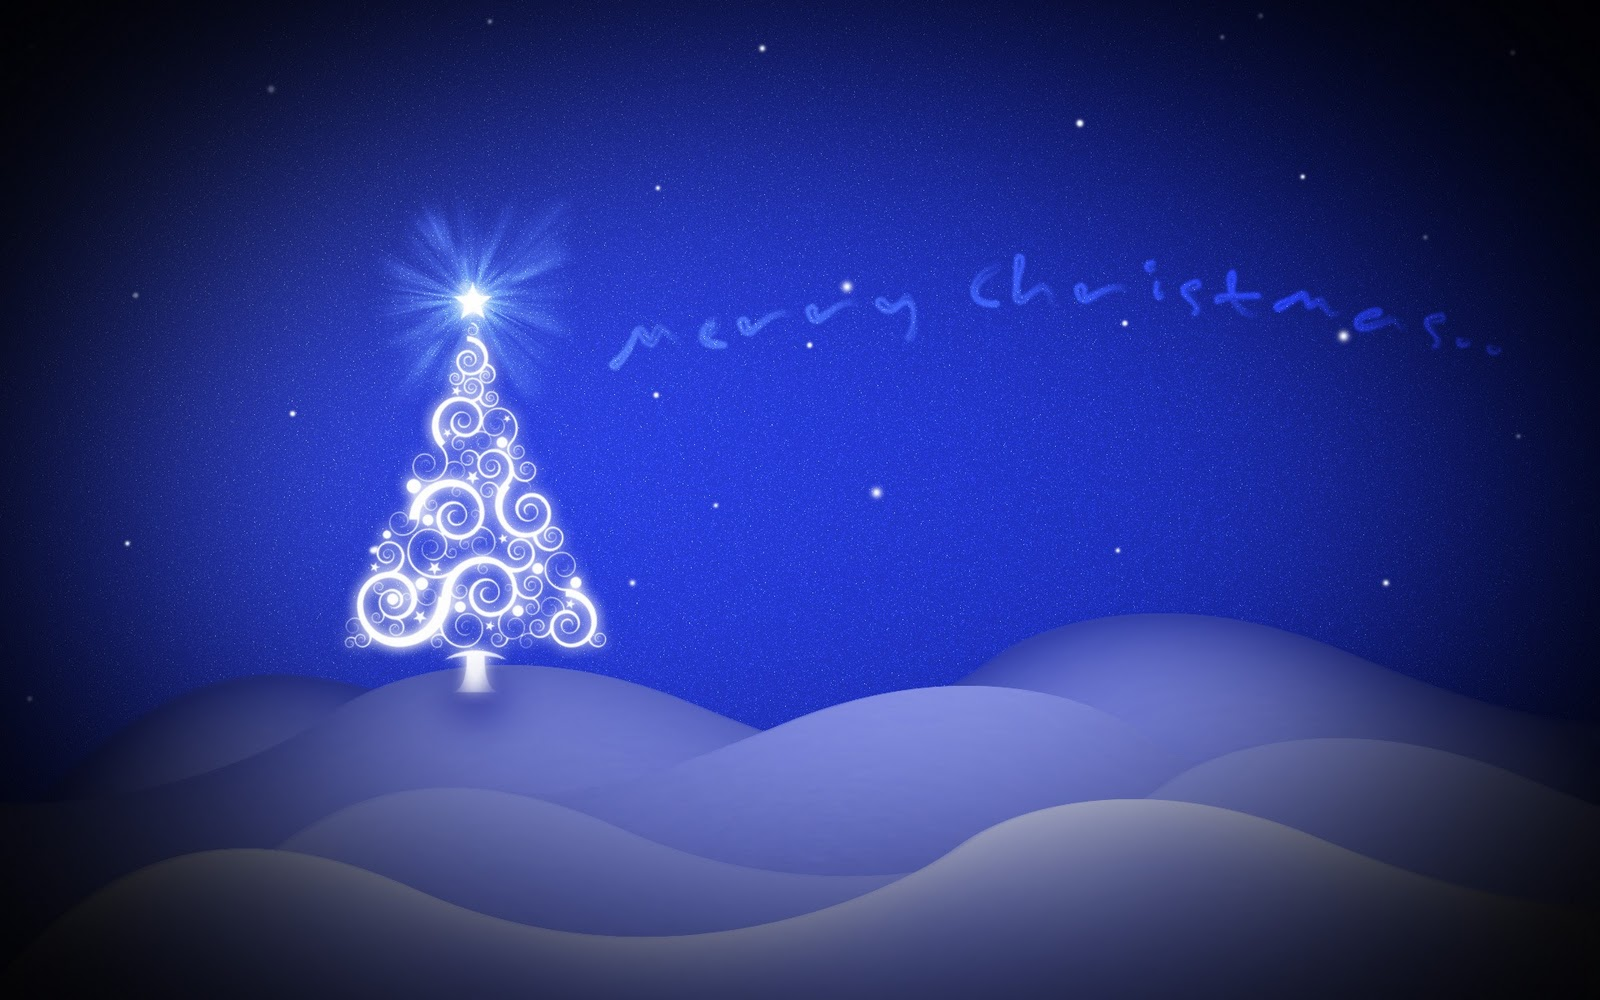 http://1.bp.blogspot.com/_tEdBugMPfS0/TRQWvBXZa4I/AAAAAAAAASg/Kz46koFcrPs/s1600/beautiful-christmas-tree-wallpaper-source_e8r.jpg